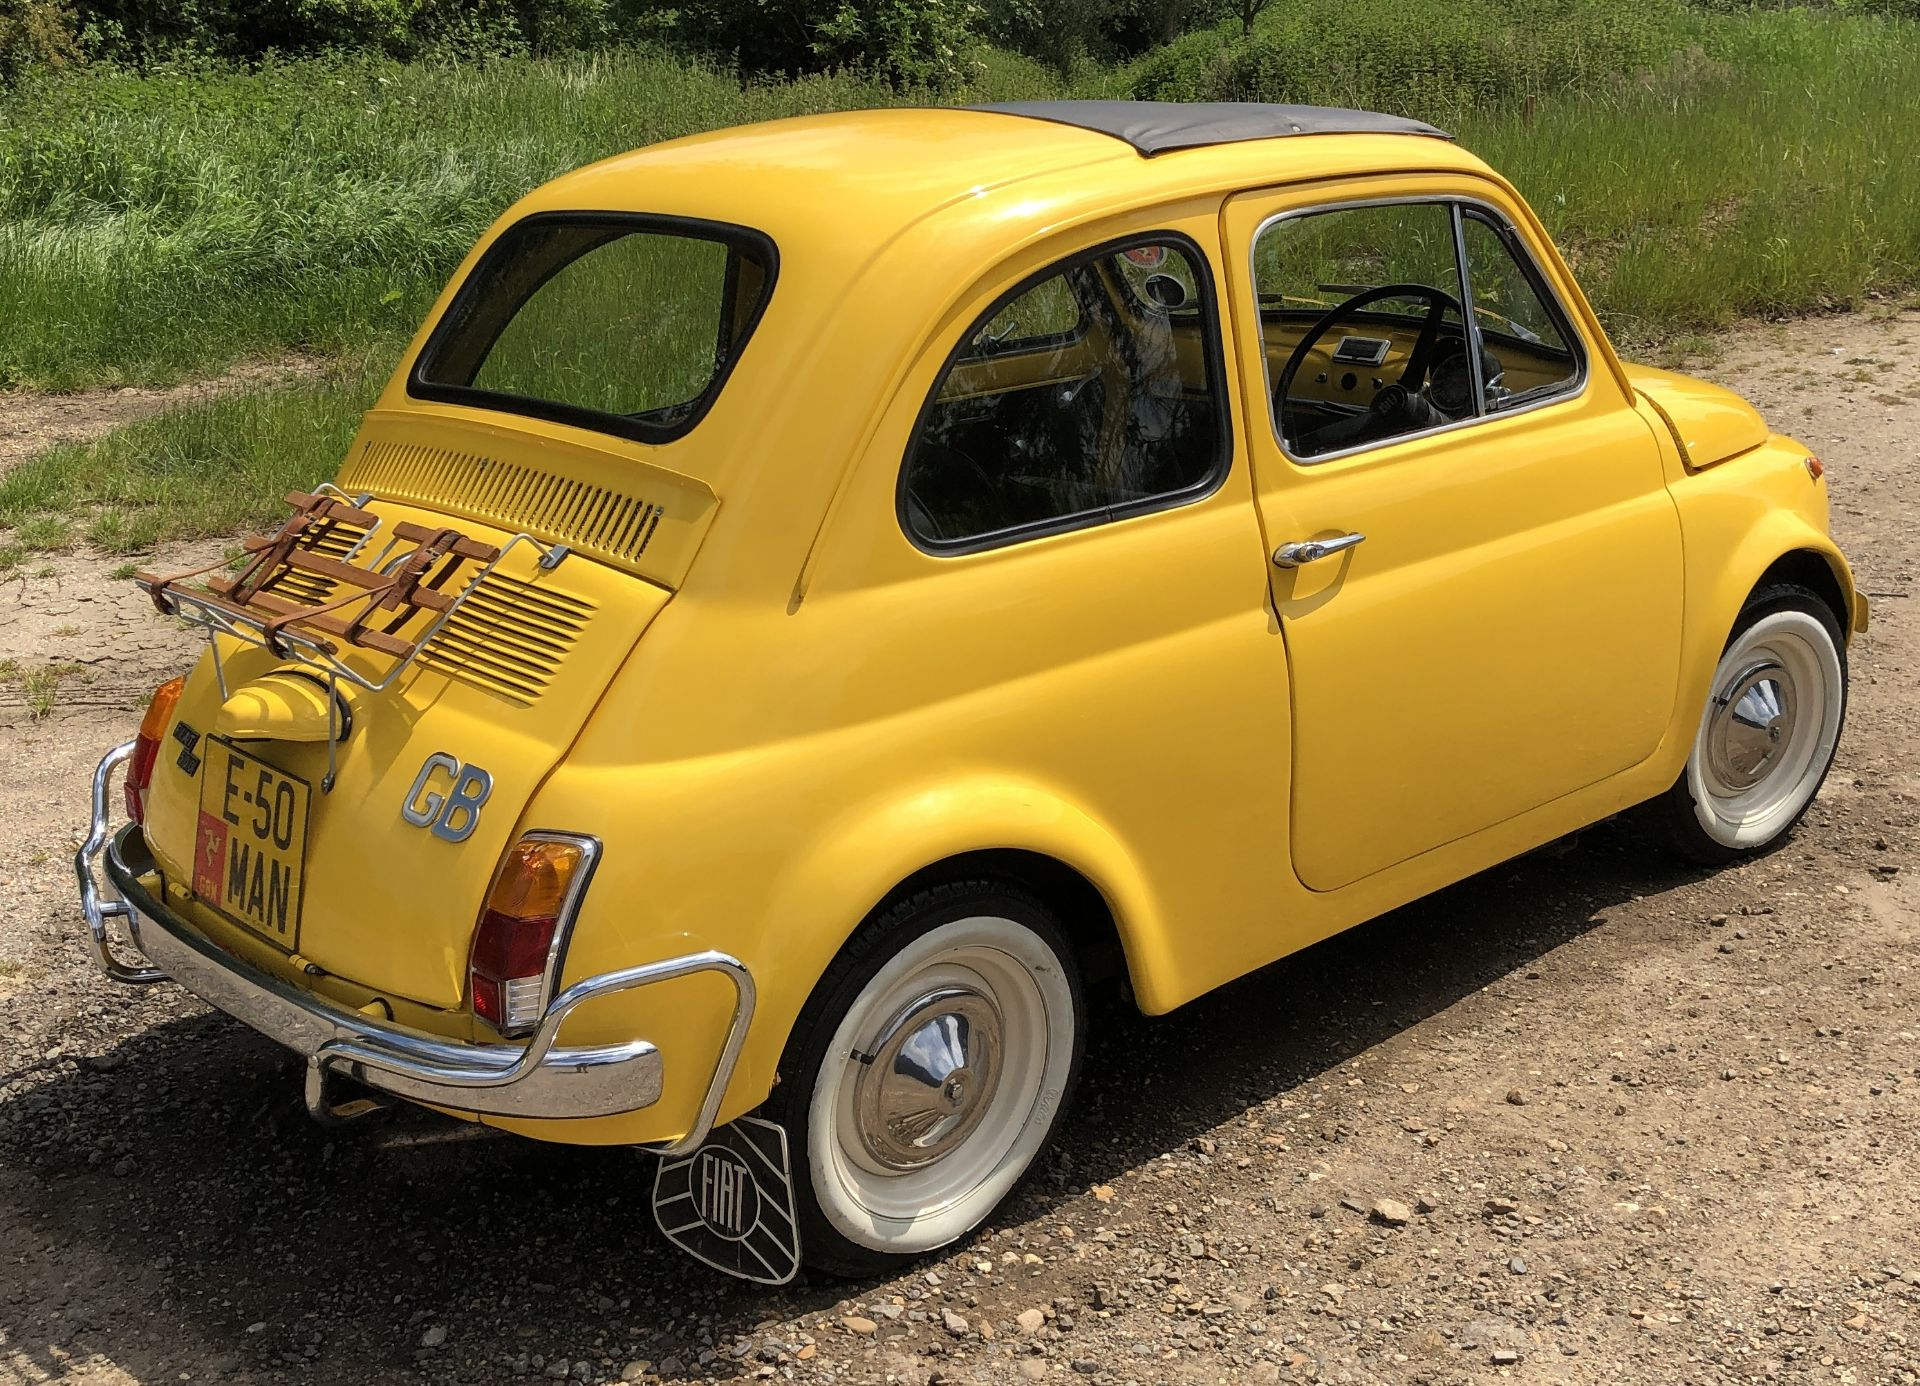 1972 Fiat 500 Saloon, Registration E-50-Man (IOM, Formally Registered as TGF 249L), First Registered - Image 5 of 34